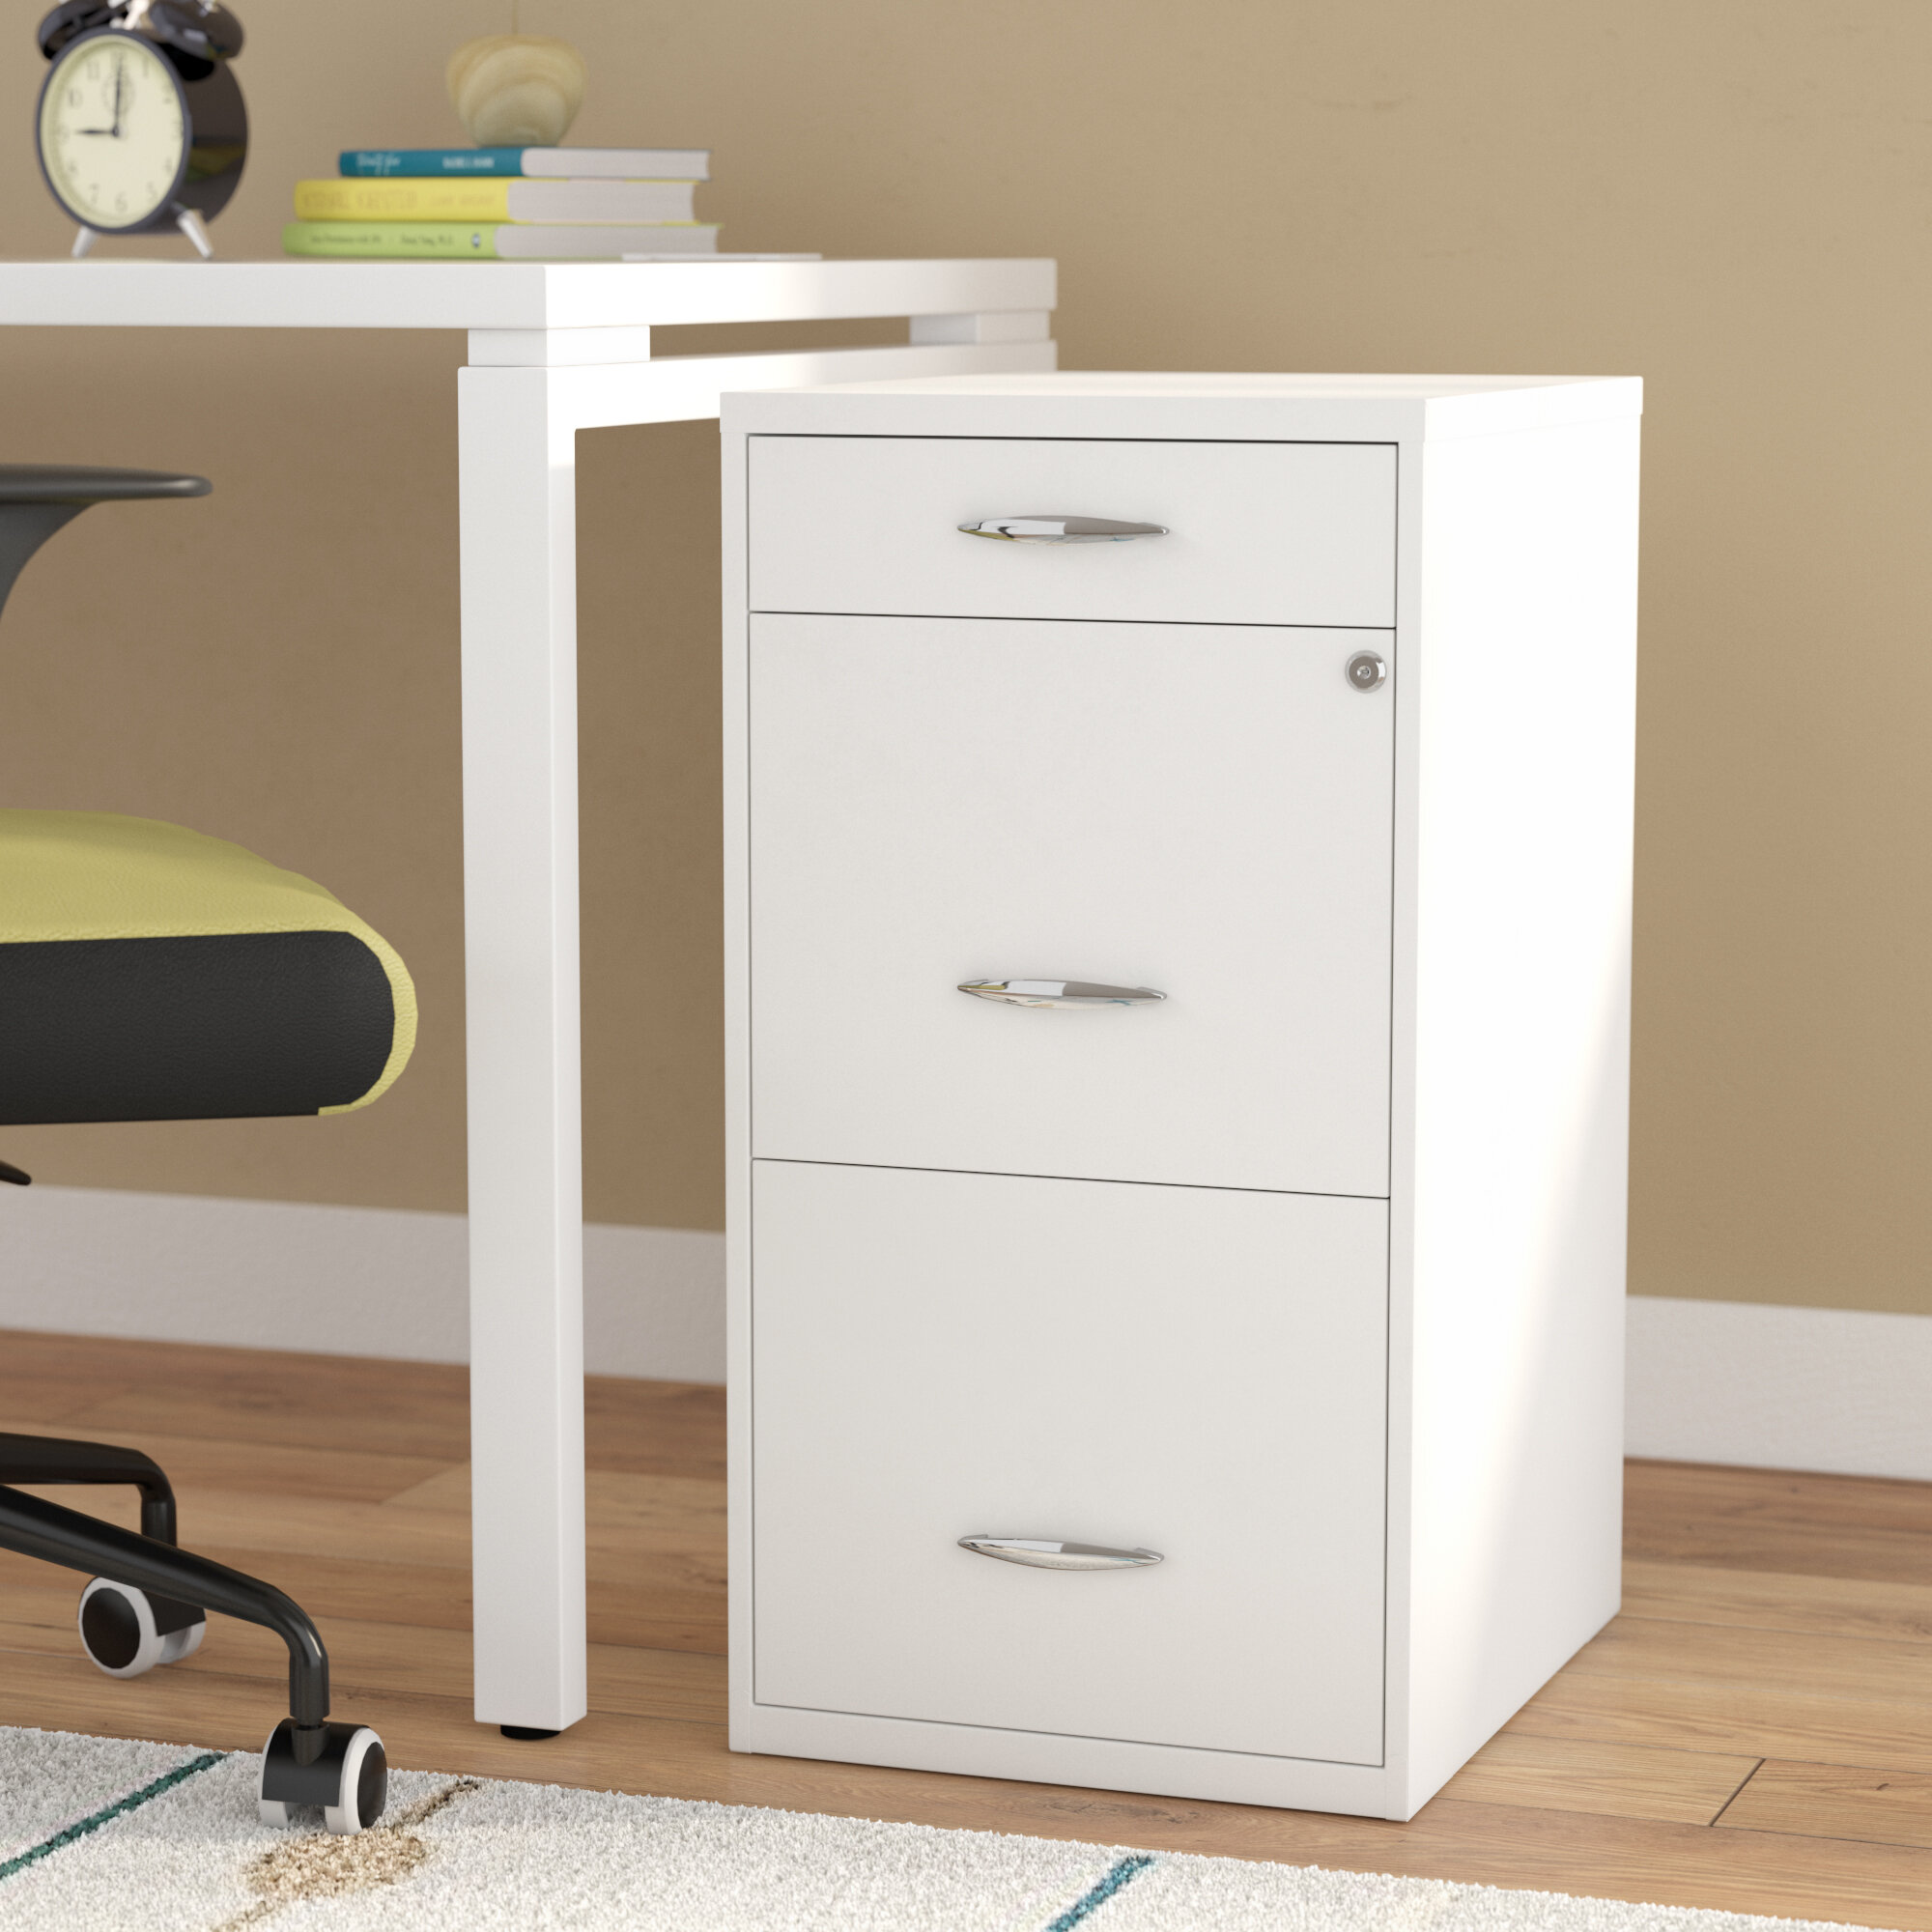 photo drawer capital metal office file am choice furniture feb cabinet product lateral filing